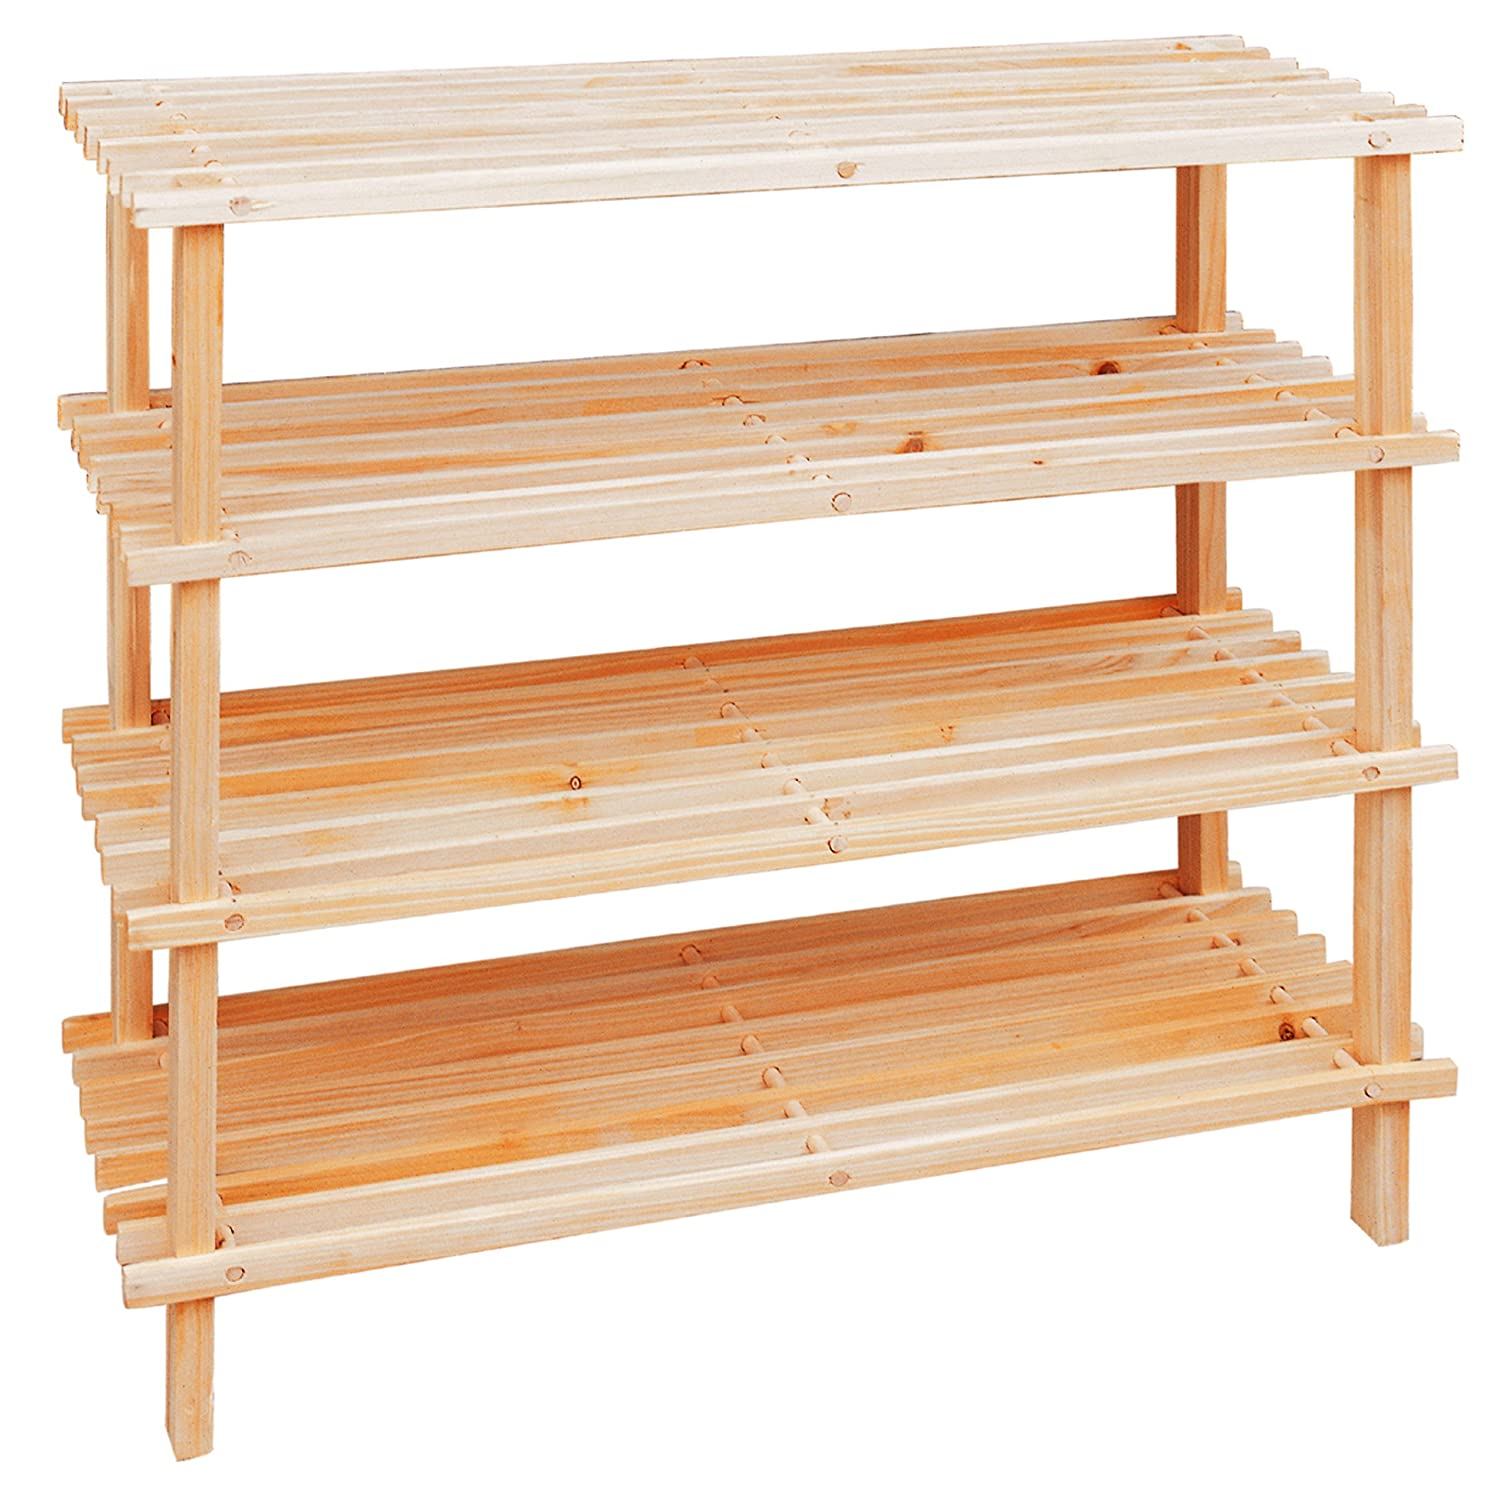 Premier Housewares 4 Tier Slatted Wooden Shoe Rack   Beige: Amazon.co.uk:  Kitchen U0026 Home Part 51